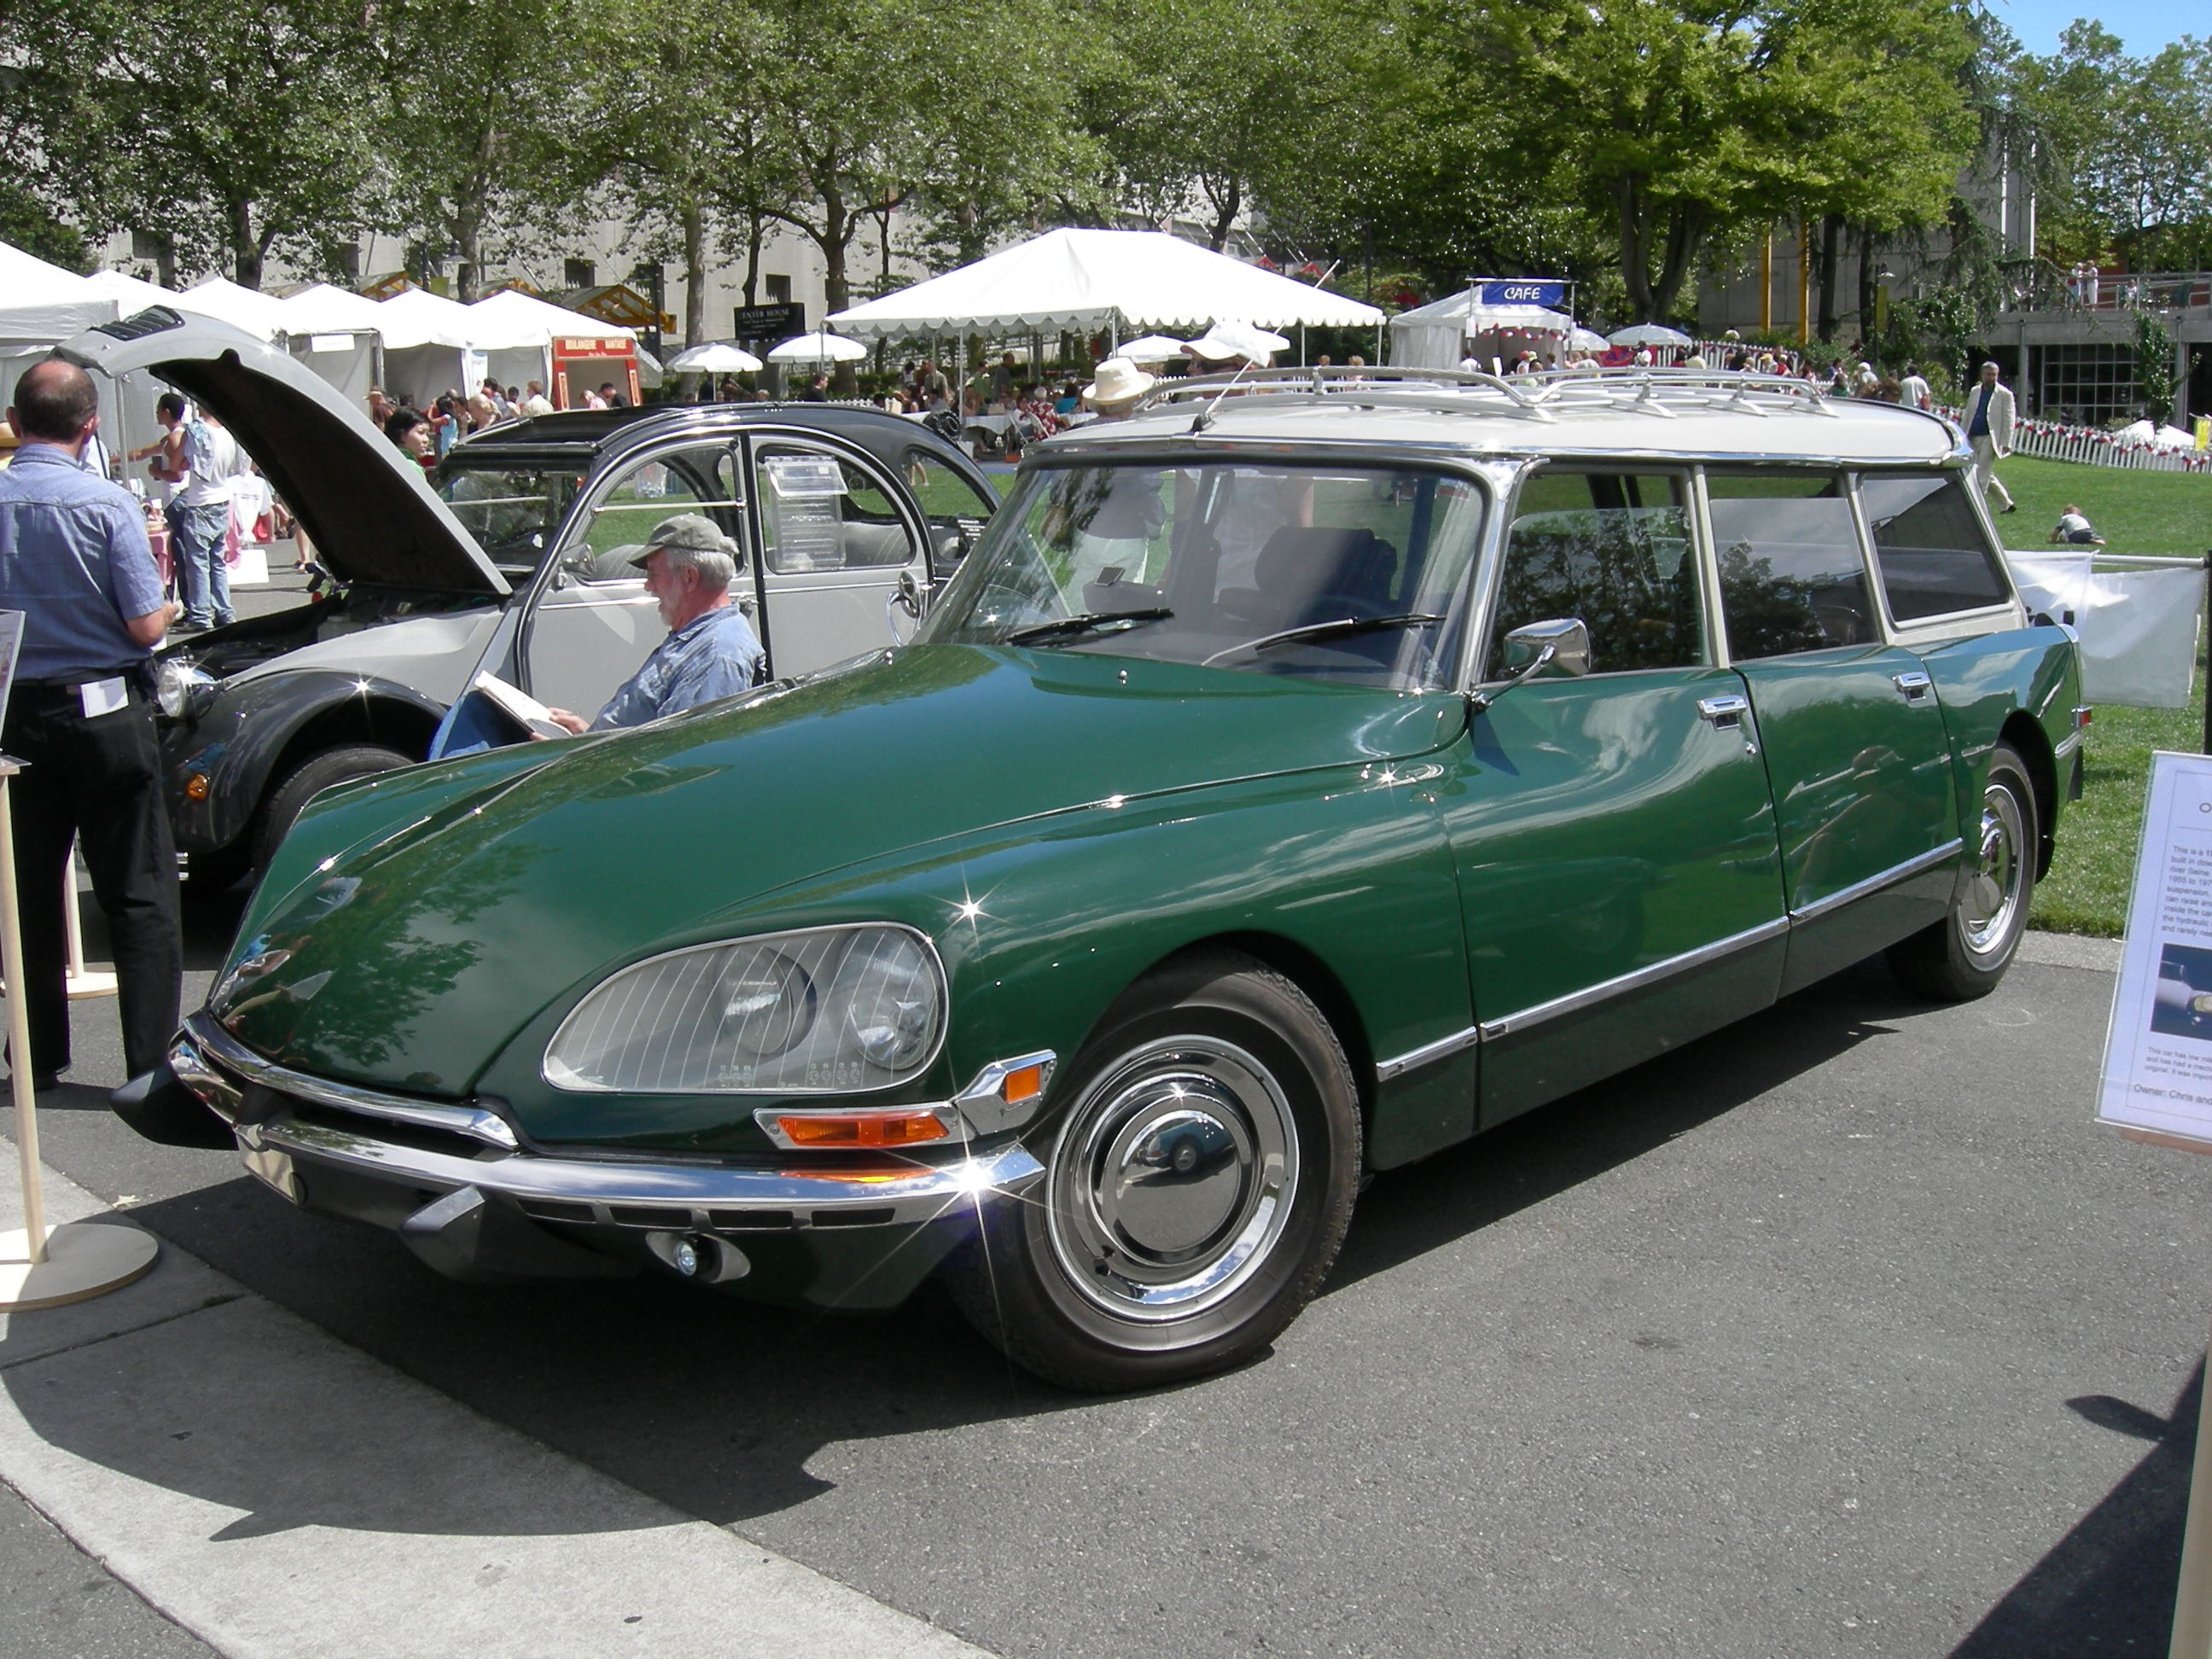 1972 Citroen DS station wagon Car Free Picture Download Image Of